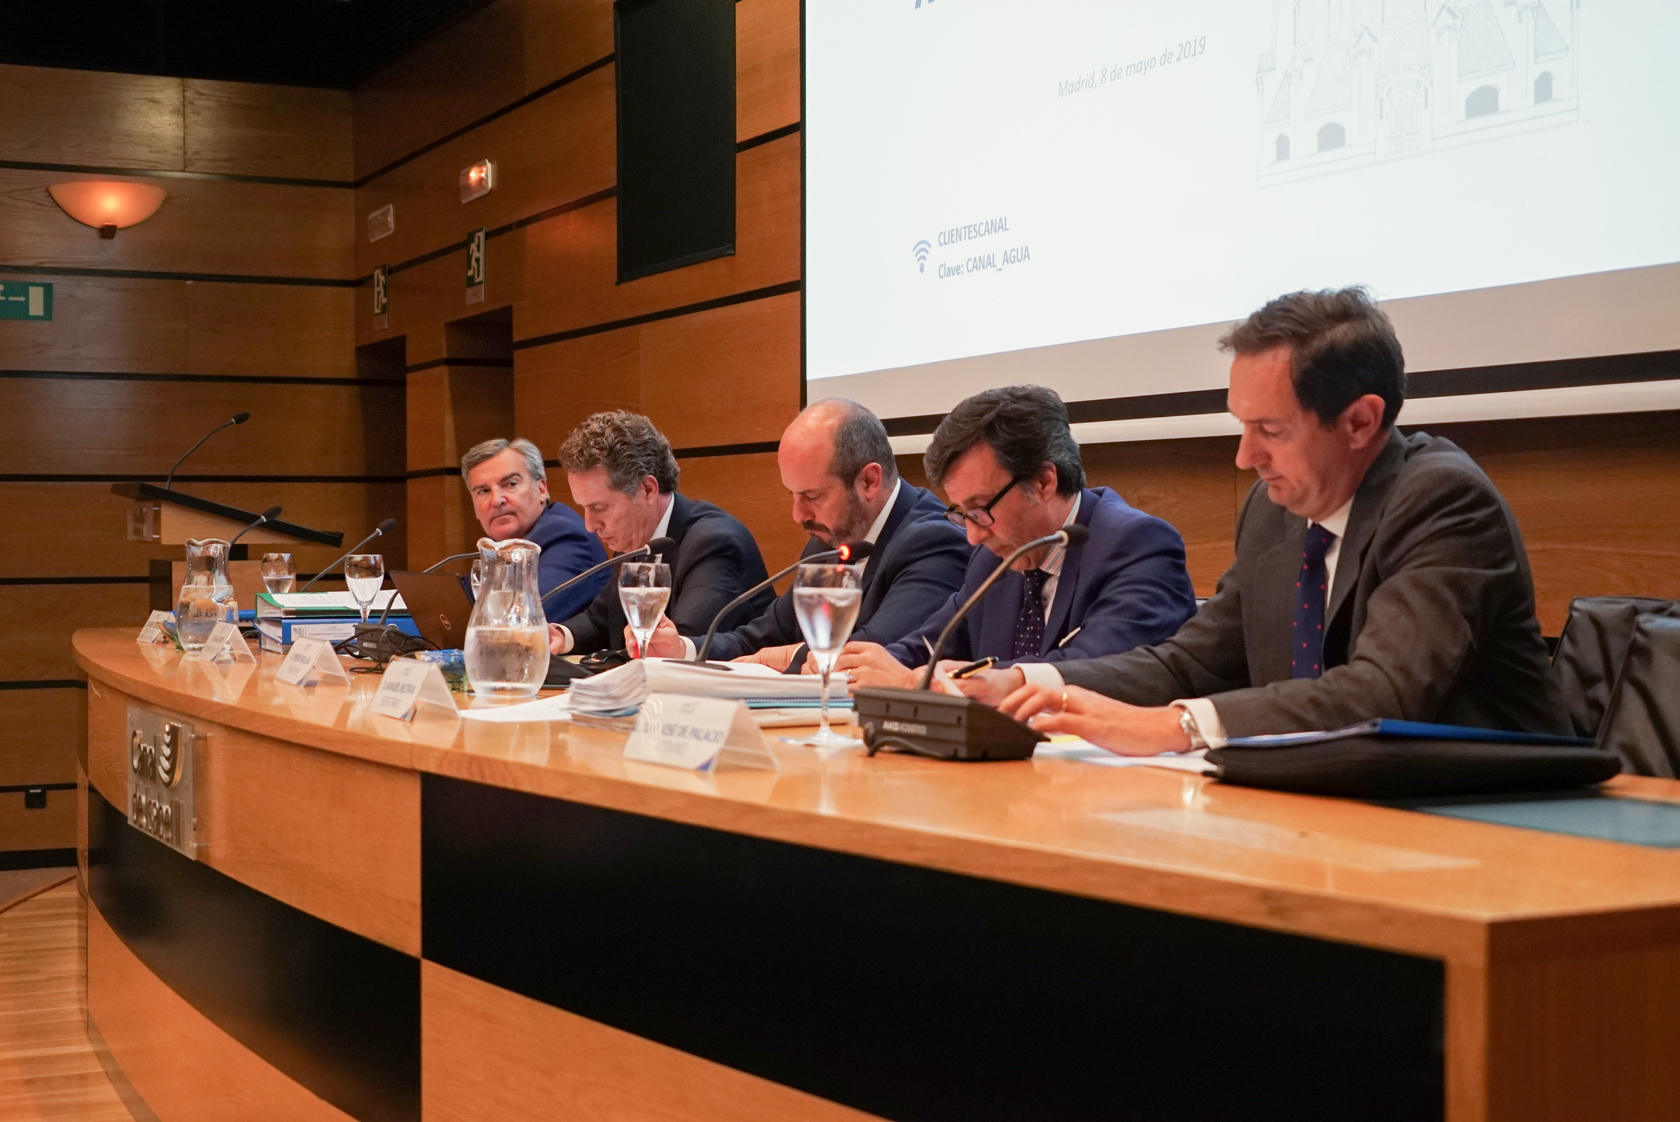 The Shareholders Meeting of Canal de Isabel II